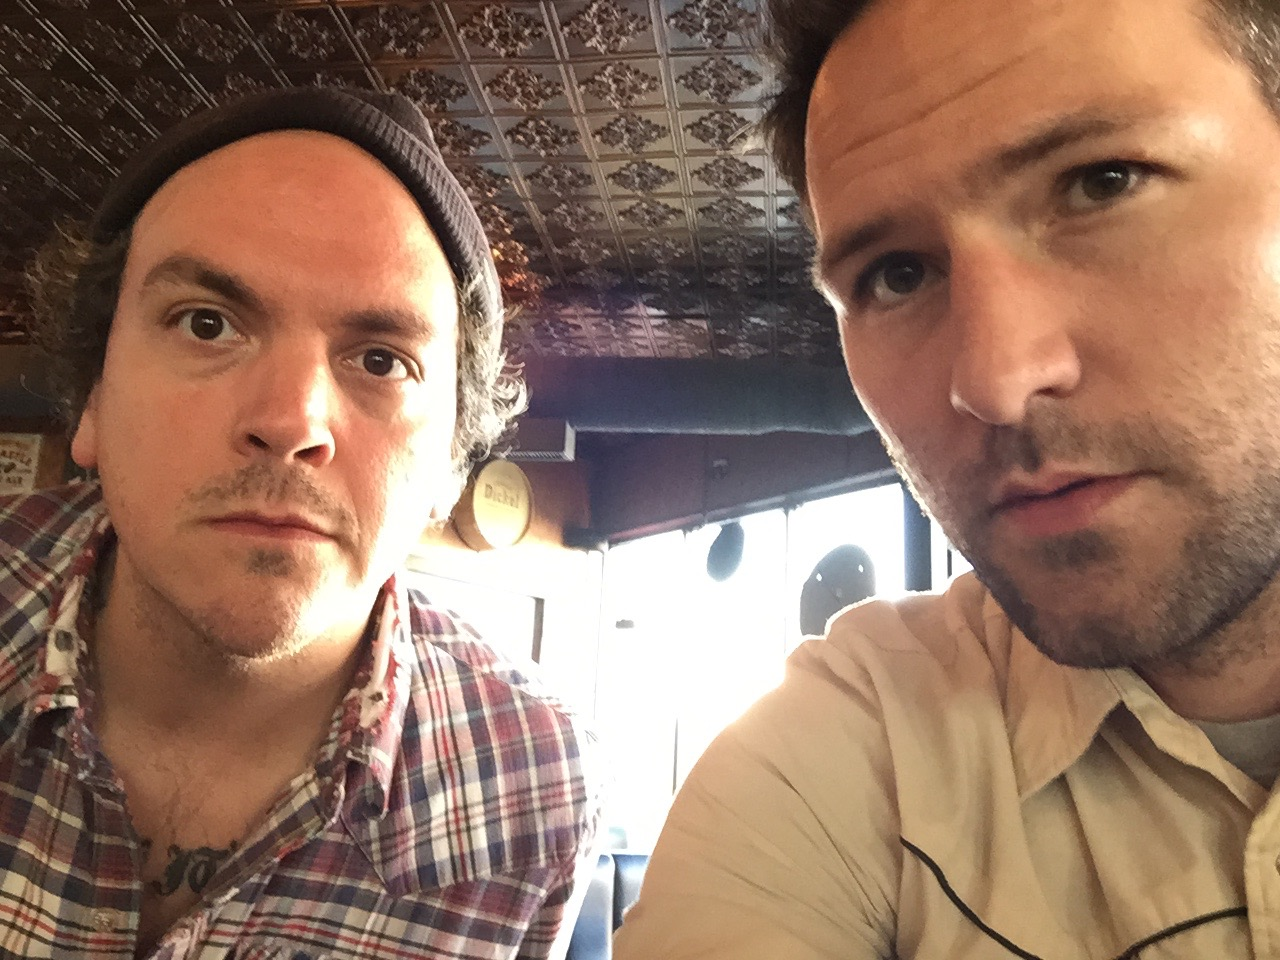 Joshua Marie Wilkinson with Mathias Svalina in Omaha, NE 2015